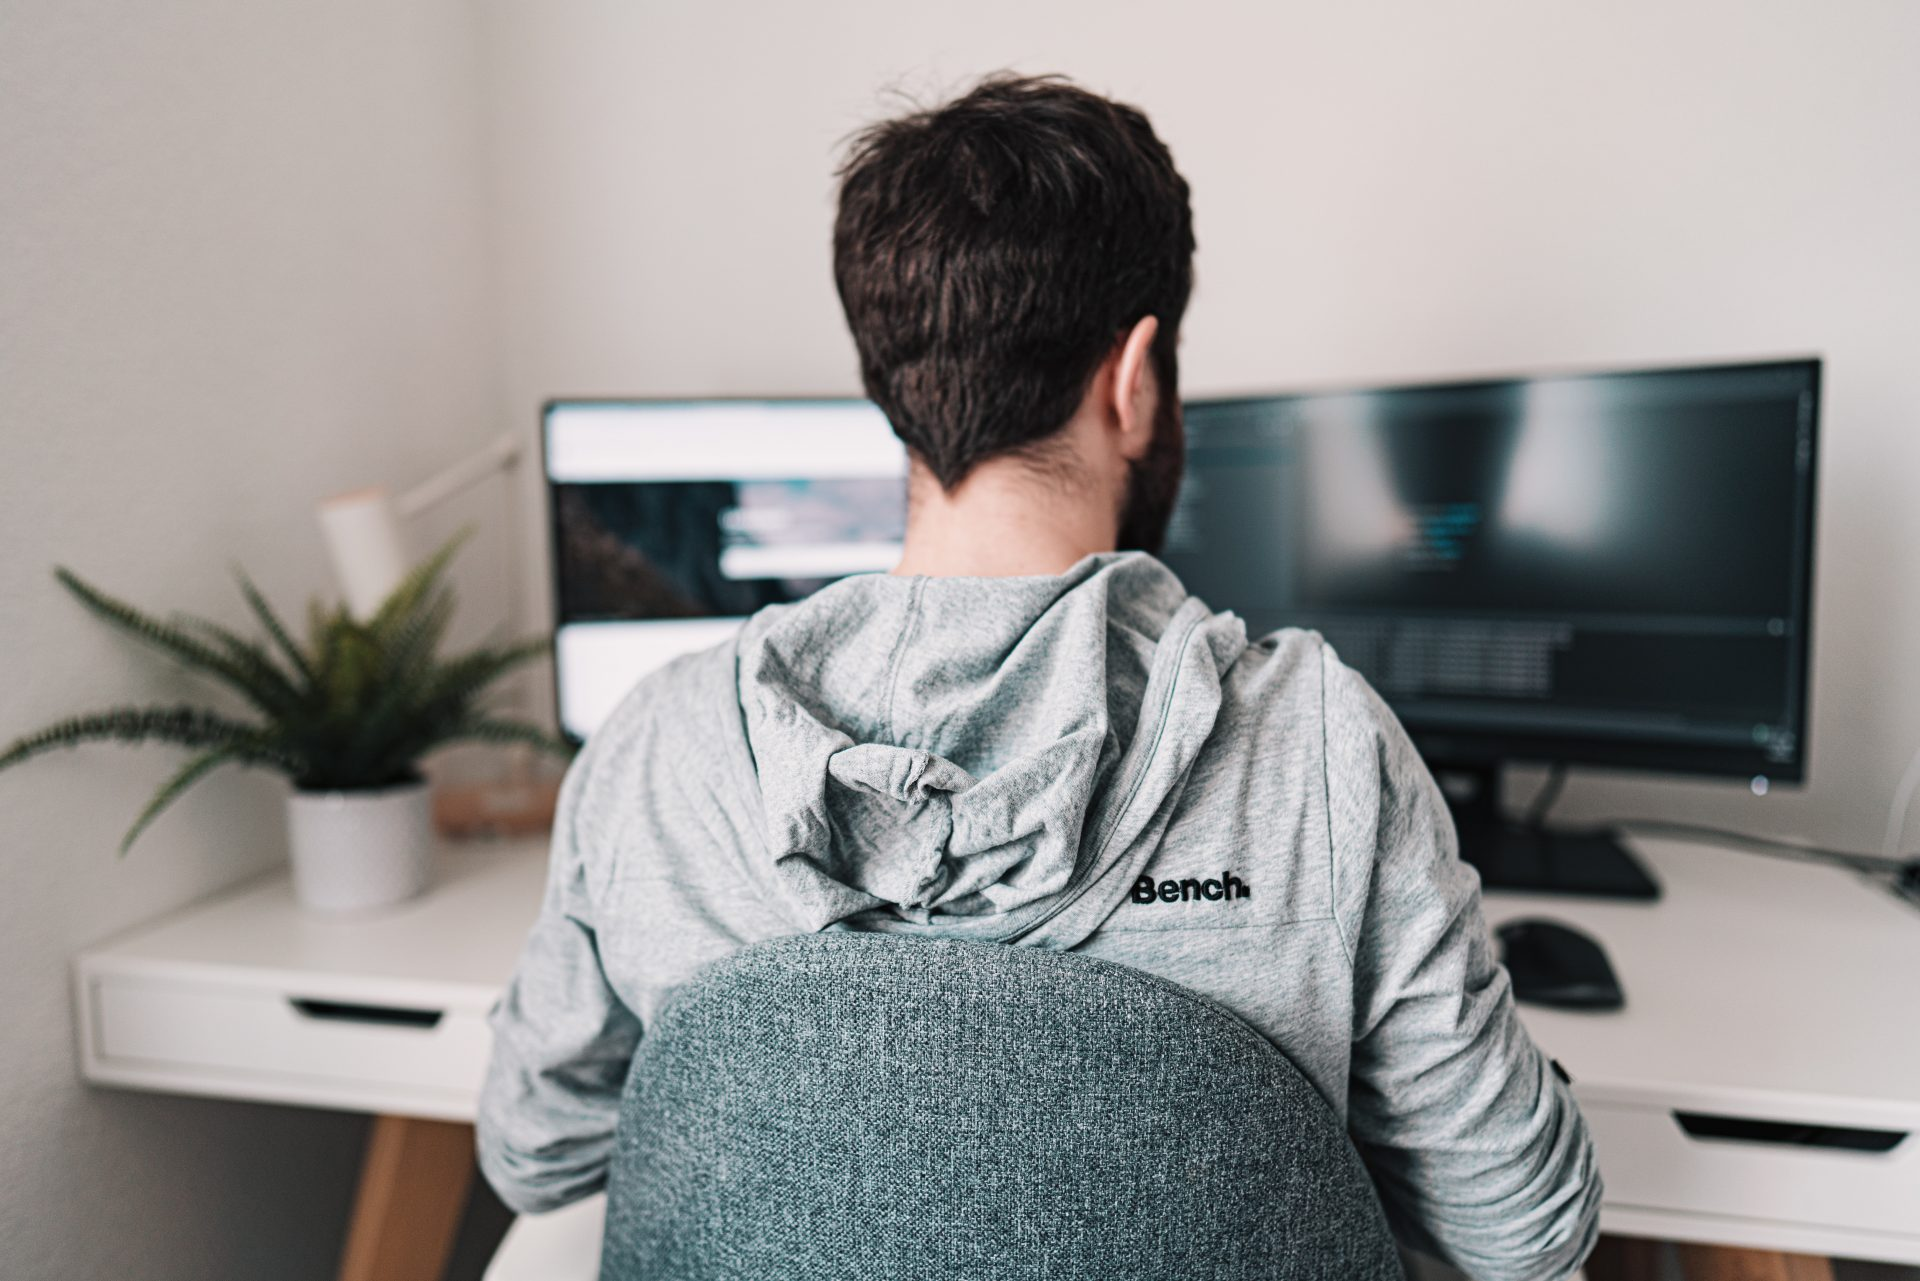 5 essential items to improve your work-from-home arrangement